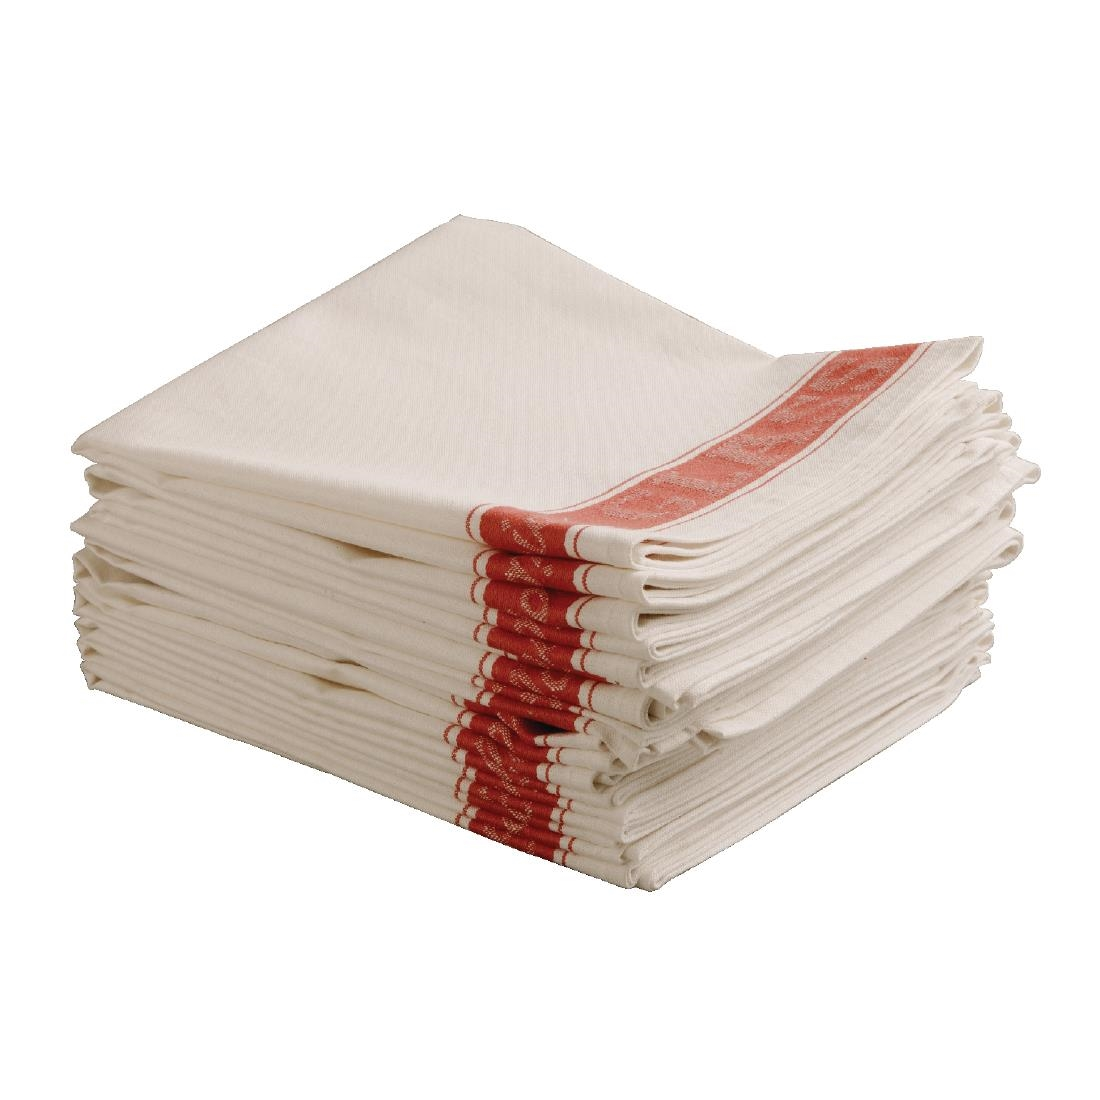 Vogue Red Border Glass Cloth Cleaning Polishes Linen Tea ...